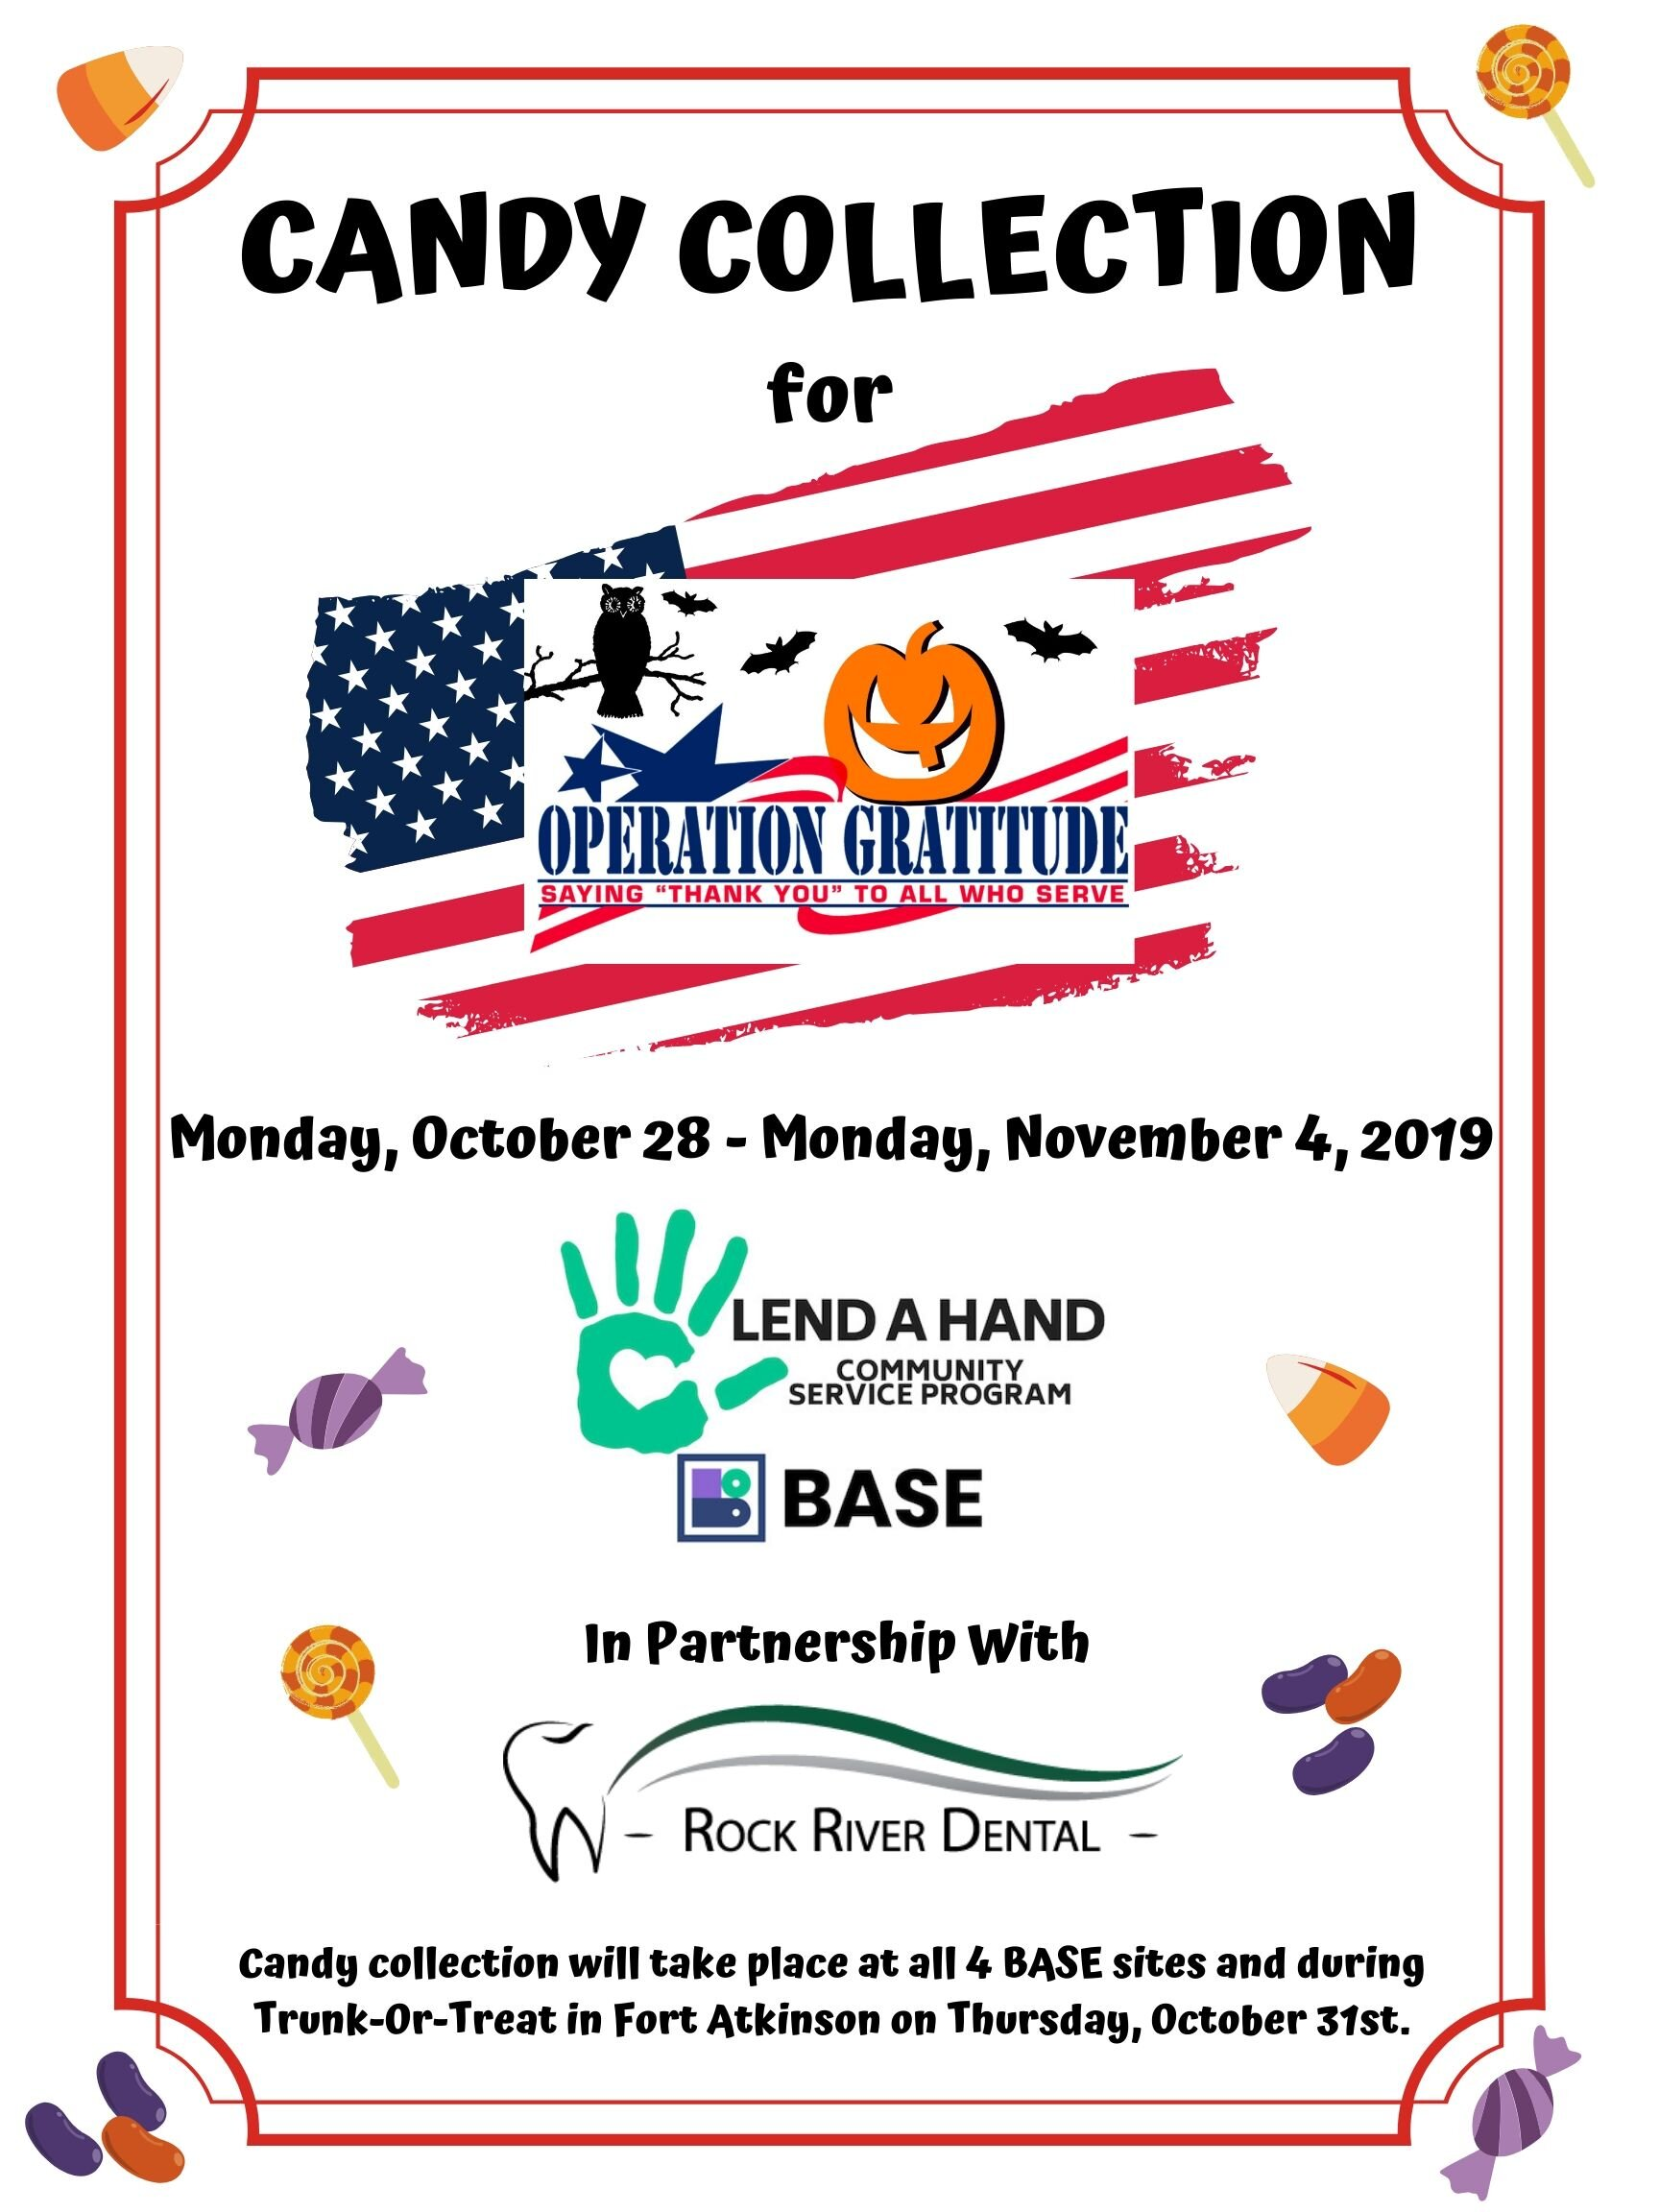 BASE Lend a Hand October Project - Candy collection for Operation Gratitude - All 4 BASE sites collected candy to deliver to Rock River Dental to donate to Operation Gratitude.